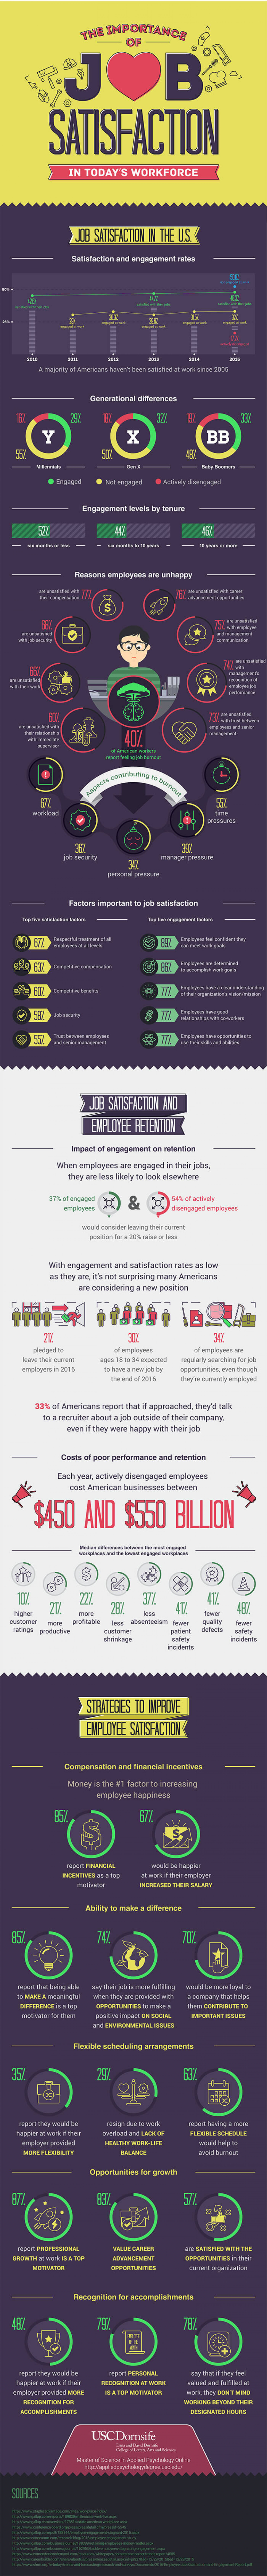 The Importance of Job Satisfaction in Today's Workforce Infographic